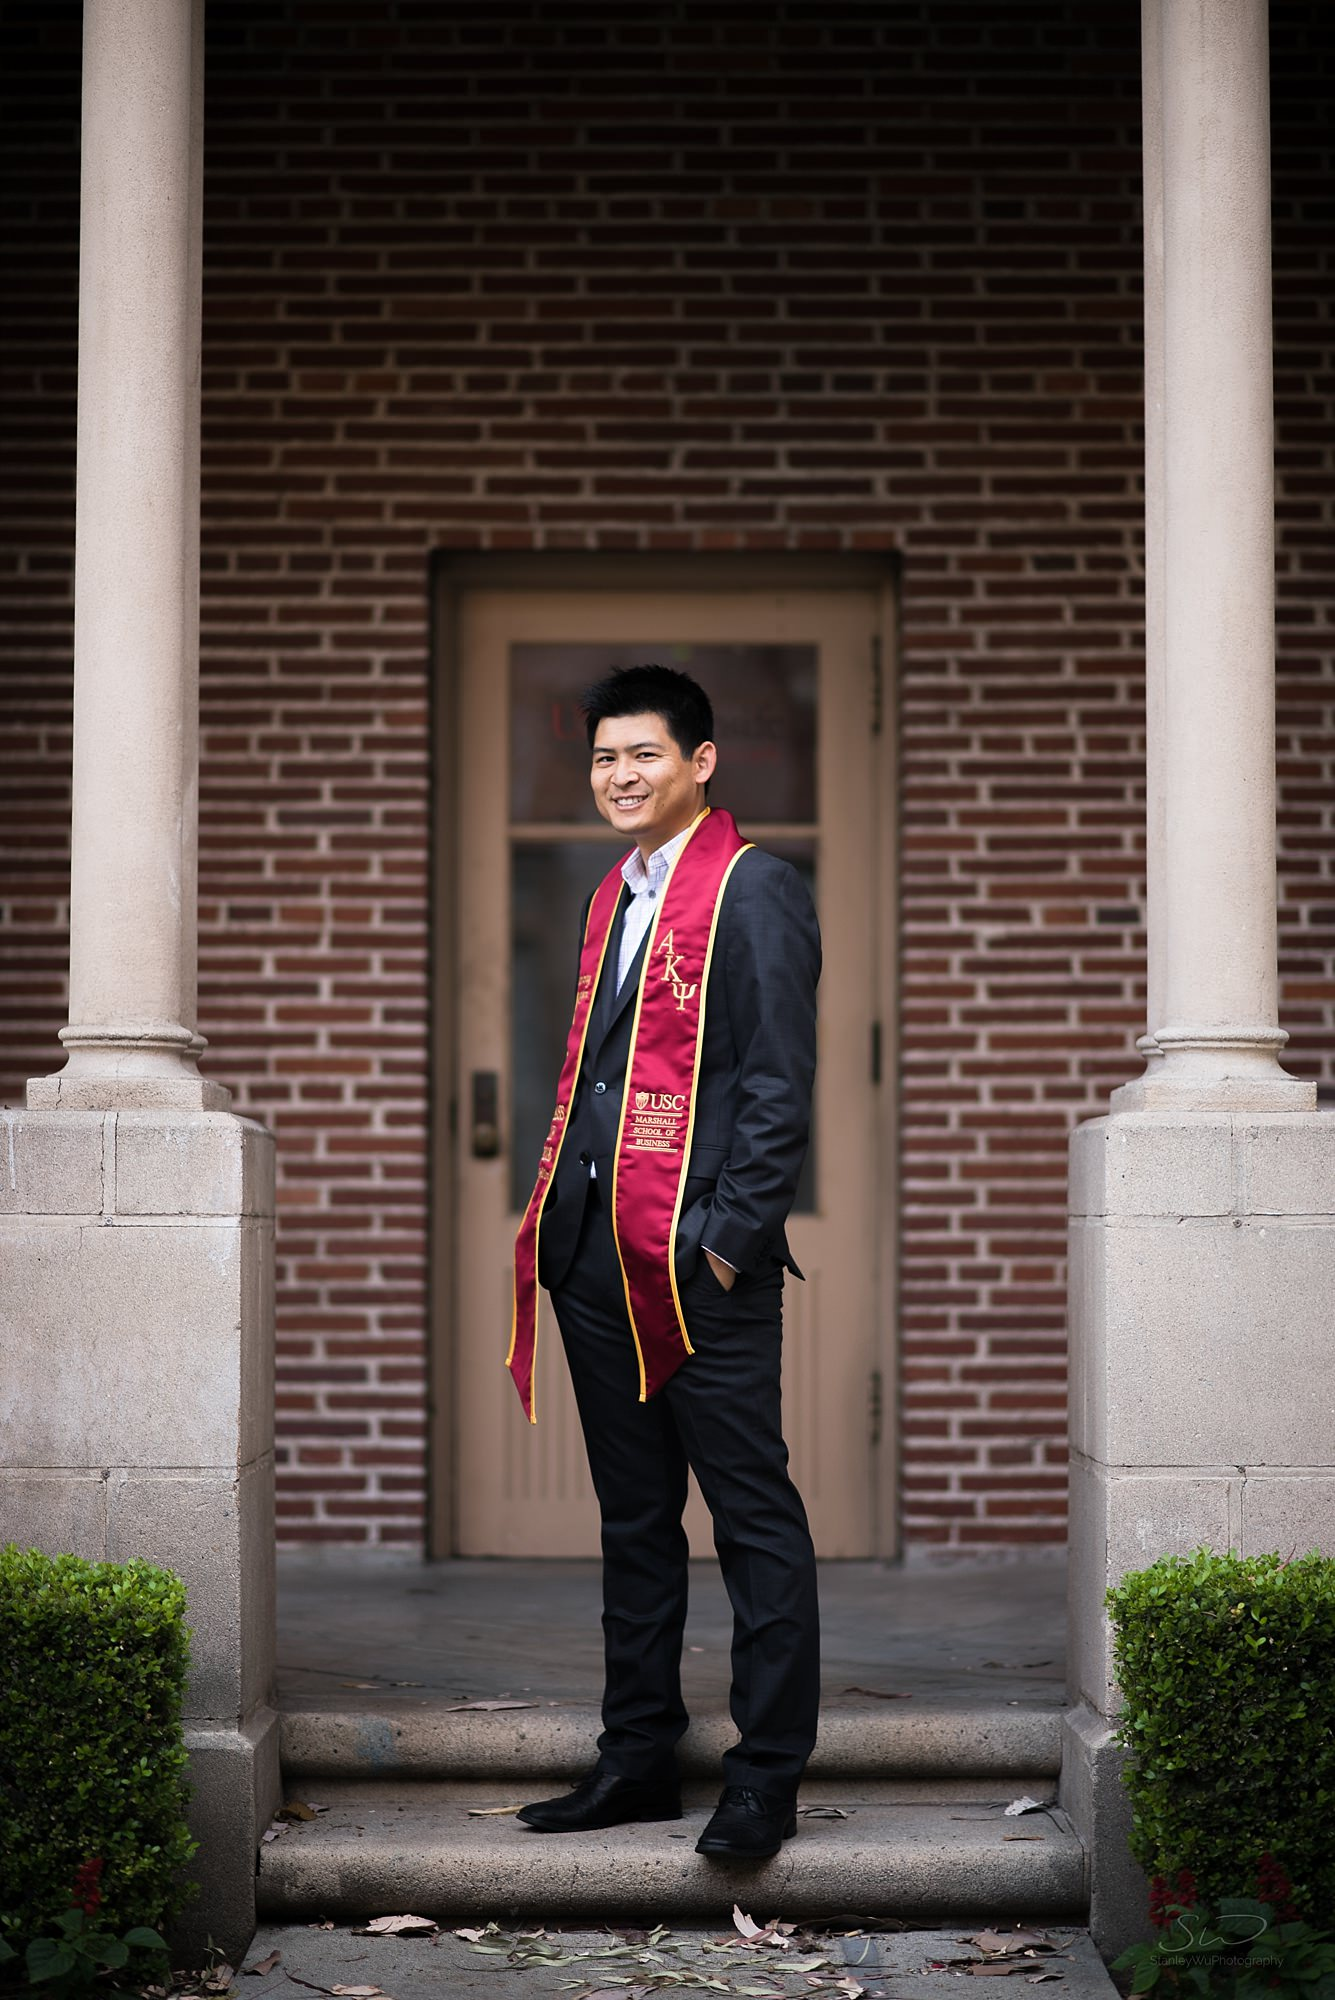 graduation senior portrait of a man smiling at usc in los angeles